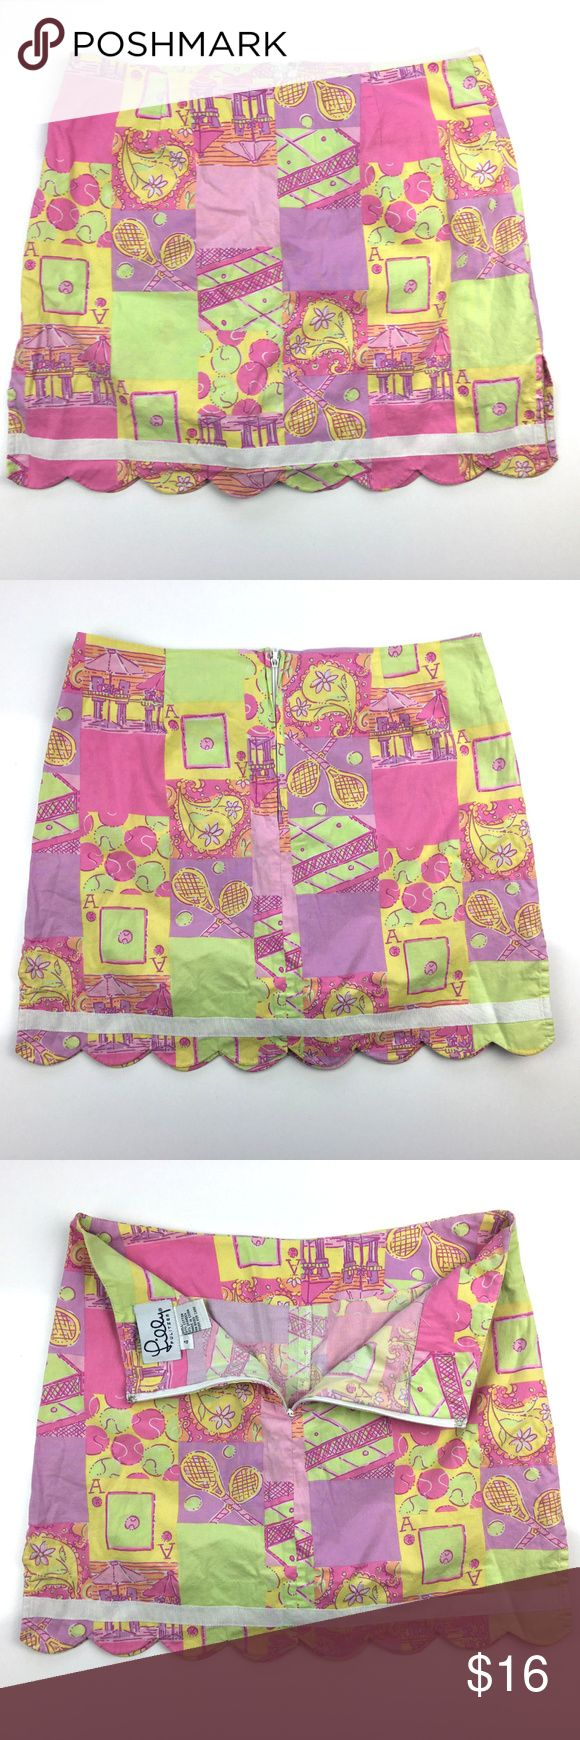 "Lily Pulitzer tennis skort in size 4 Description:  An excellent used condition Lily Pulitzer tennis skort in size 4. With tennis print in pink, green and yellow.  Dimensions:  Length:- 15"" Waist:- 14.5""  Thanks for viewing! Lilly Pulitzer Skirts"